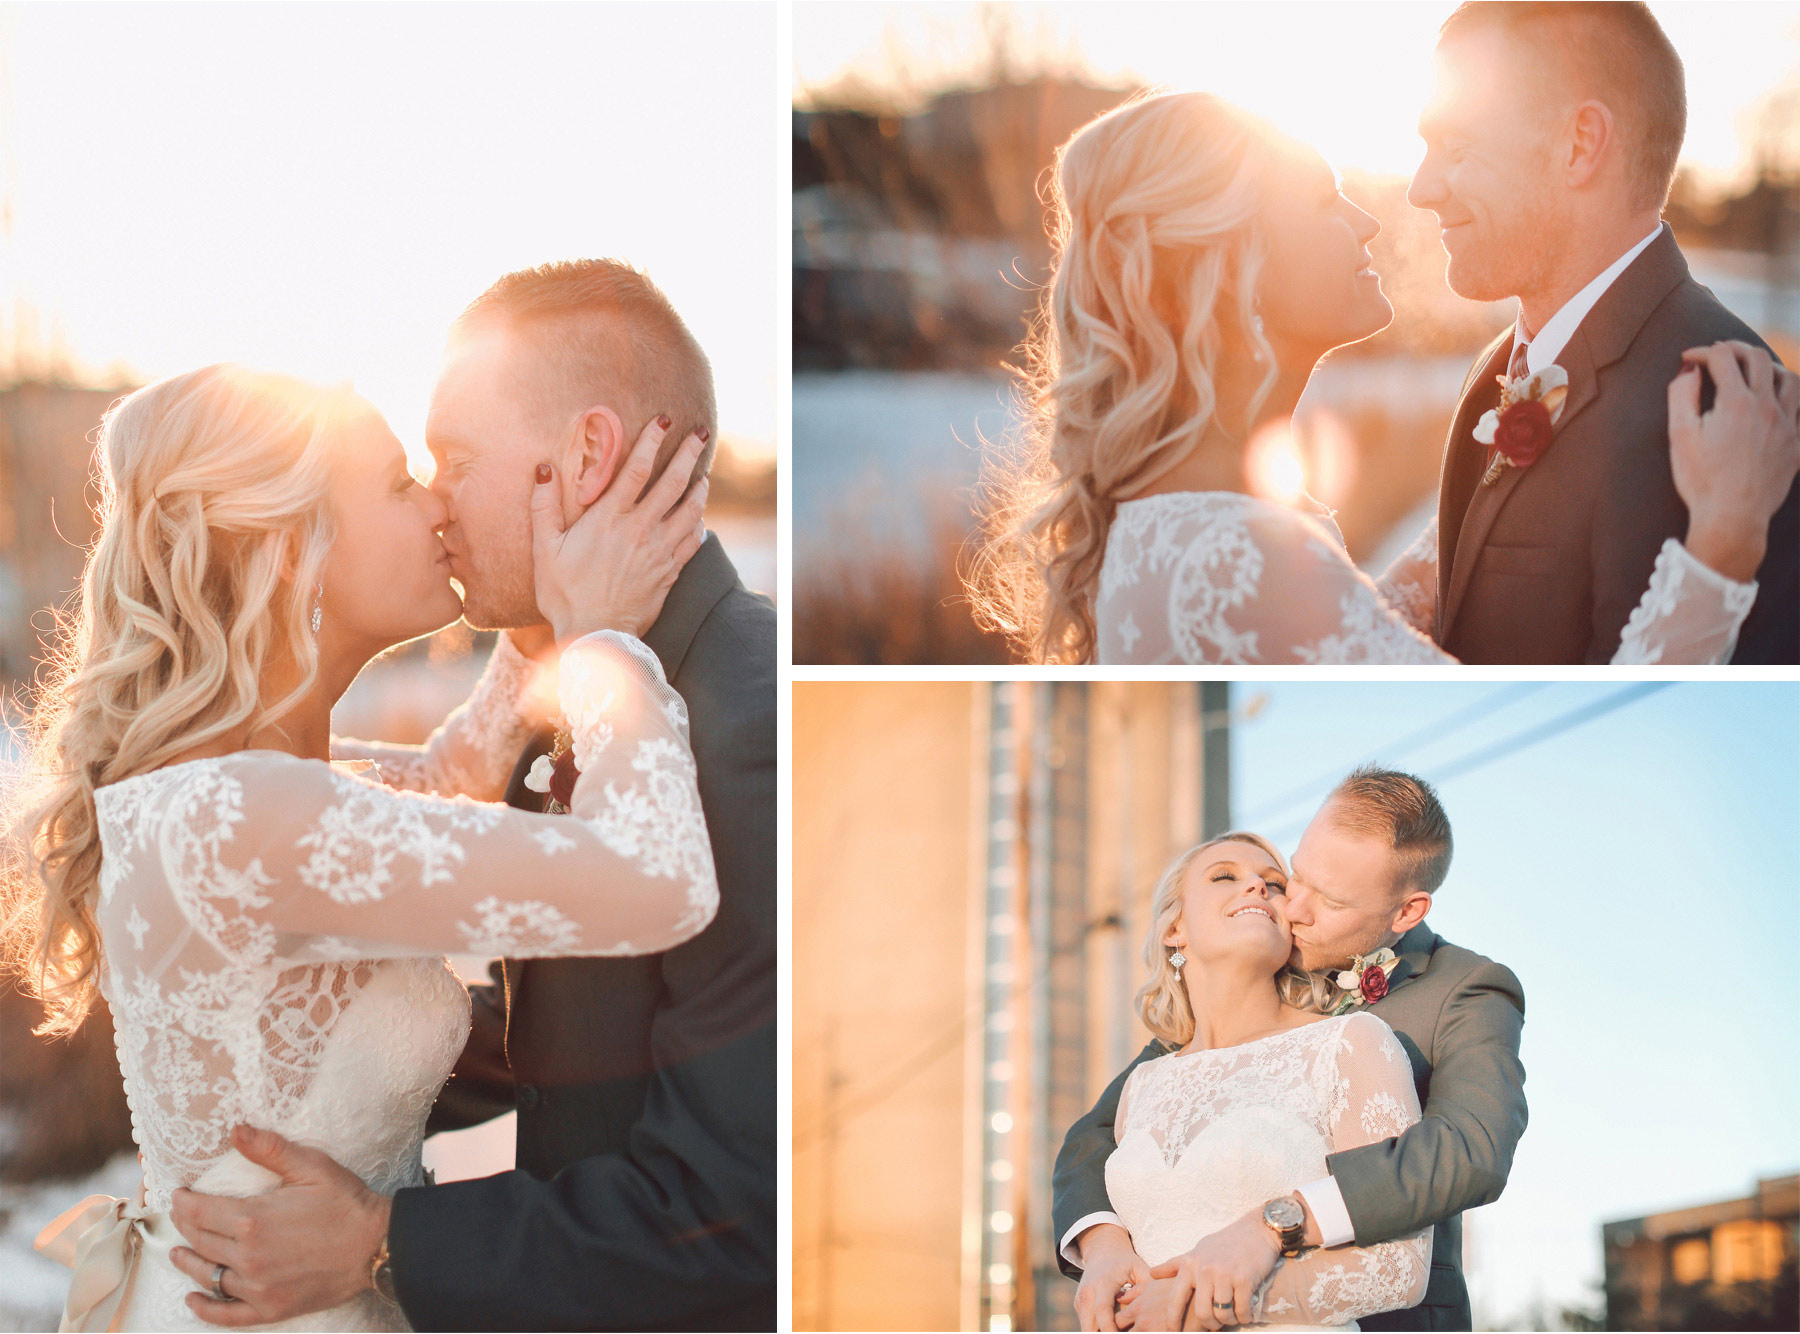 16-Minneapolis-Minnesota-Wedding-Photographer-by-Andrew-Vick-Photography-Winter-McNamara-Alumni-Center-Bride-Groom-Kiss-Embrace-Vintage-Brittany-and-Joseph.jpg